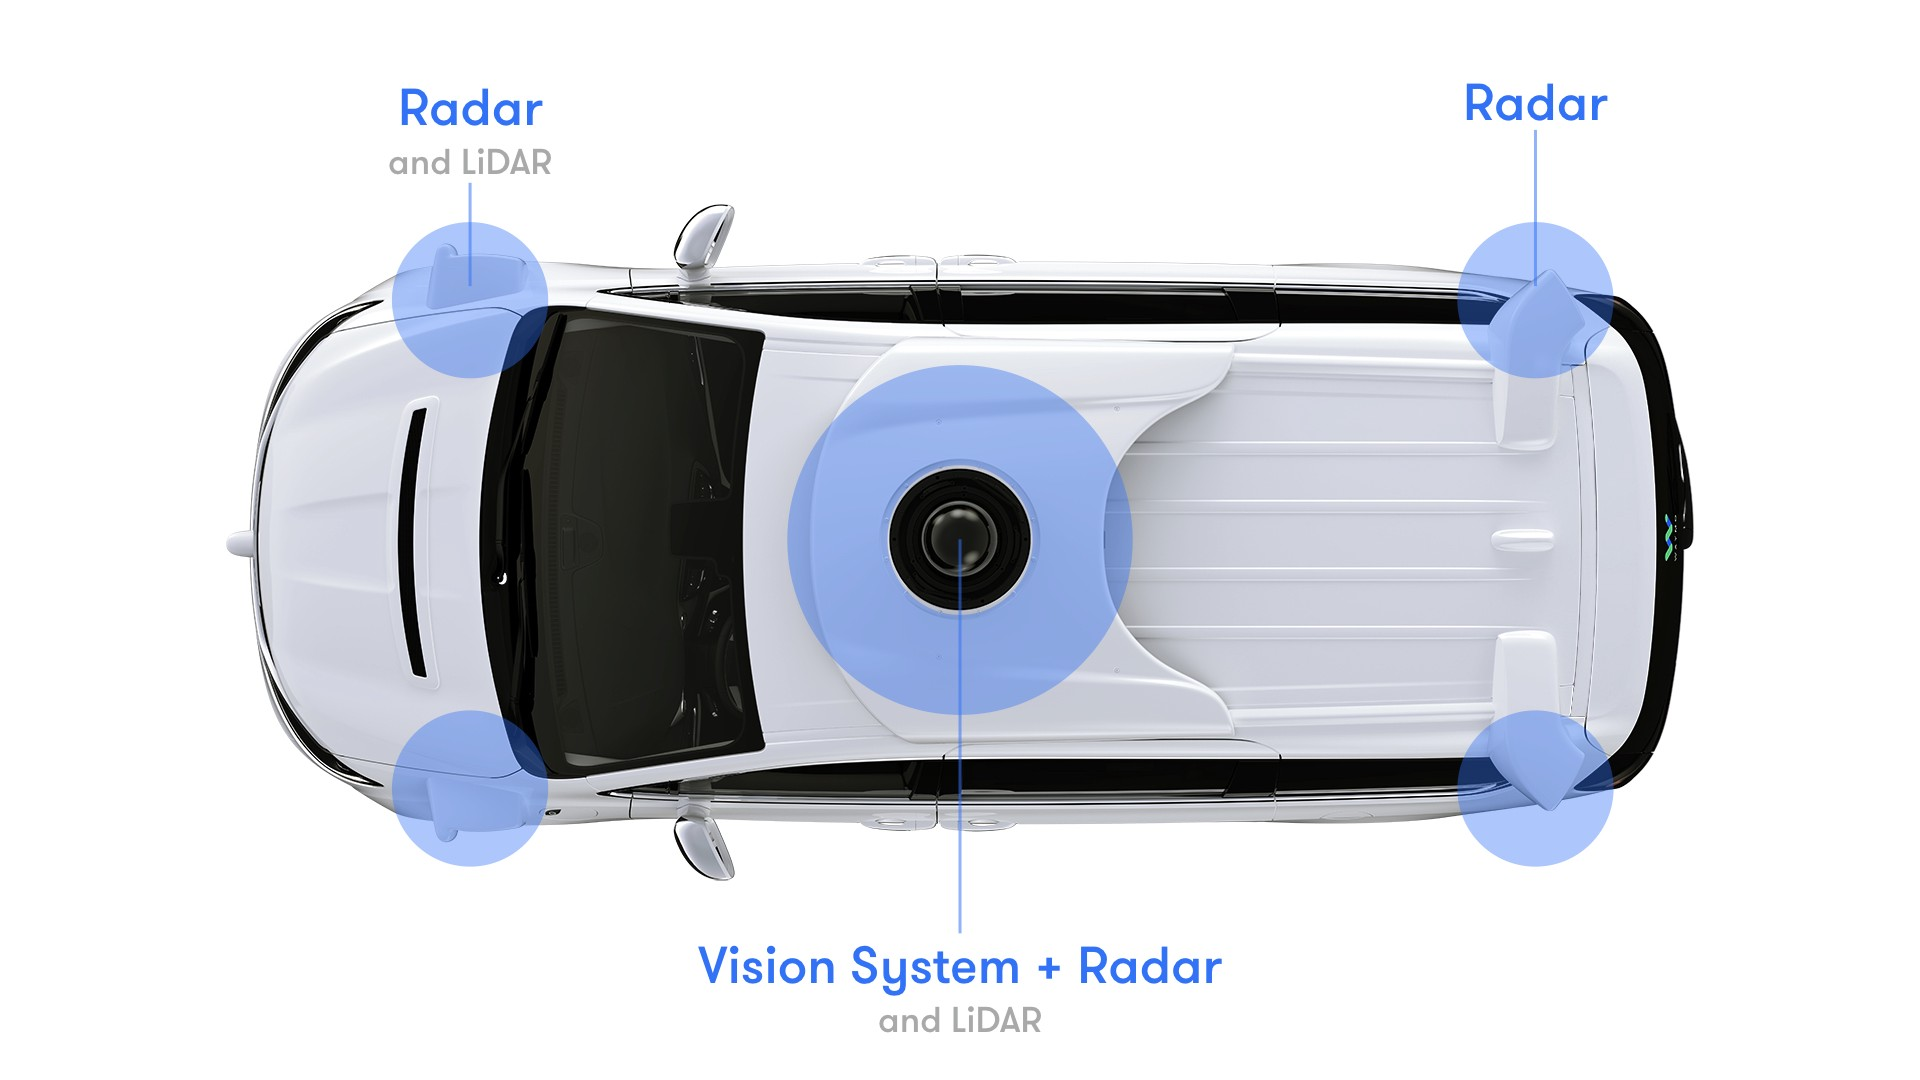 Elon Musk criticizes LIDAR & HD mapping from Waymo, self-driving competitors